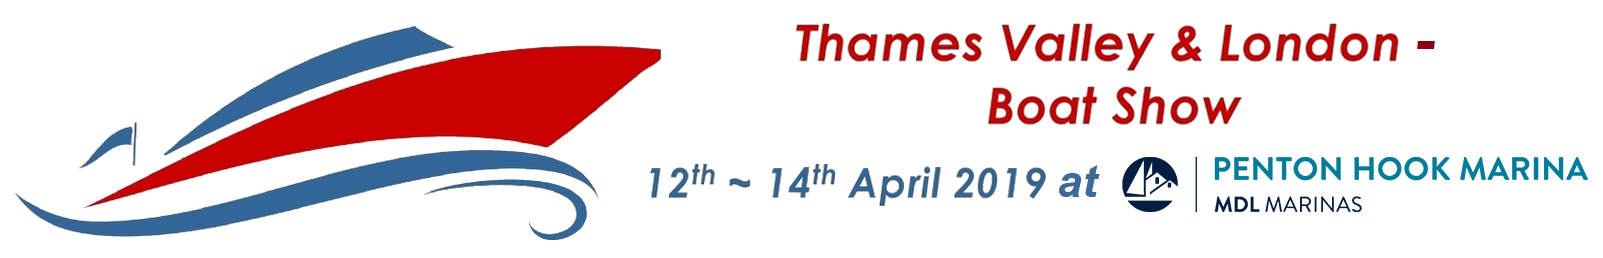 Thames Valley and London - Boat Show